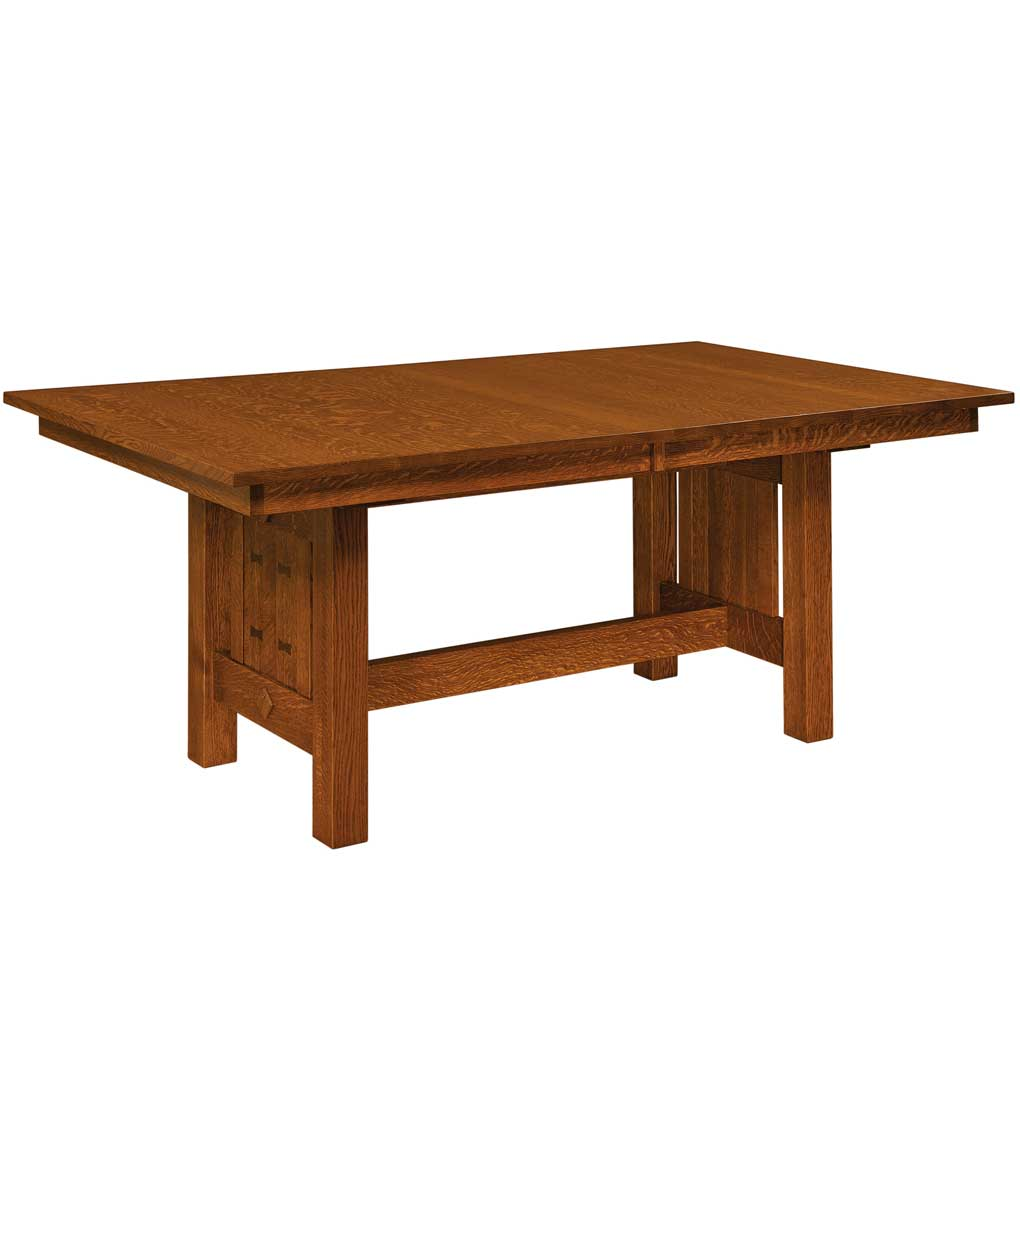 Trestle Table Amish Dining Room: Gettysburg Trestle Dining Table